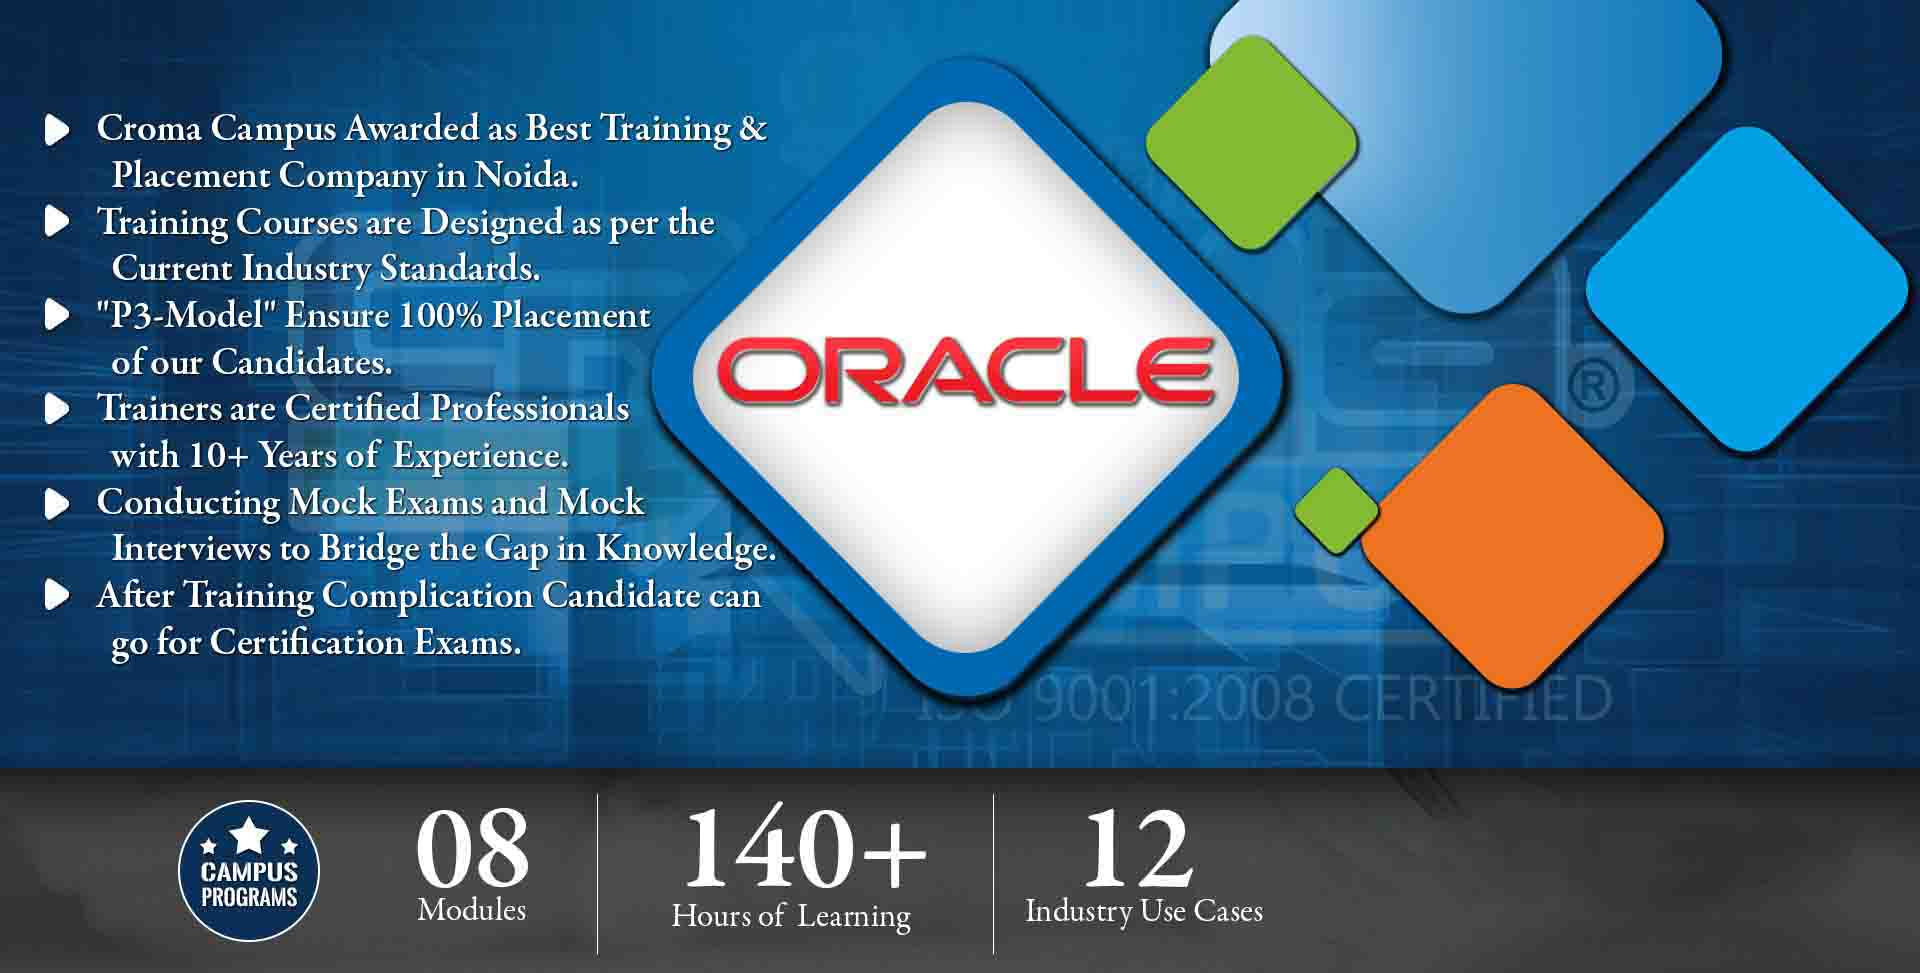 Oracle Training in Delhi NCR- Croma Campus